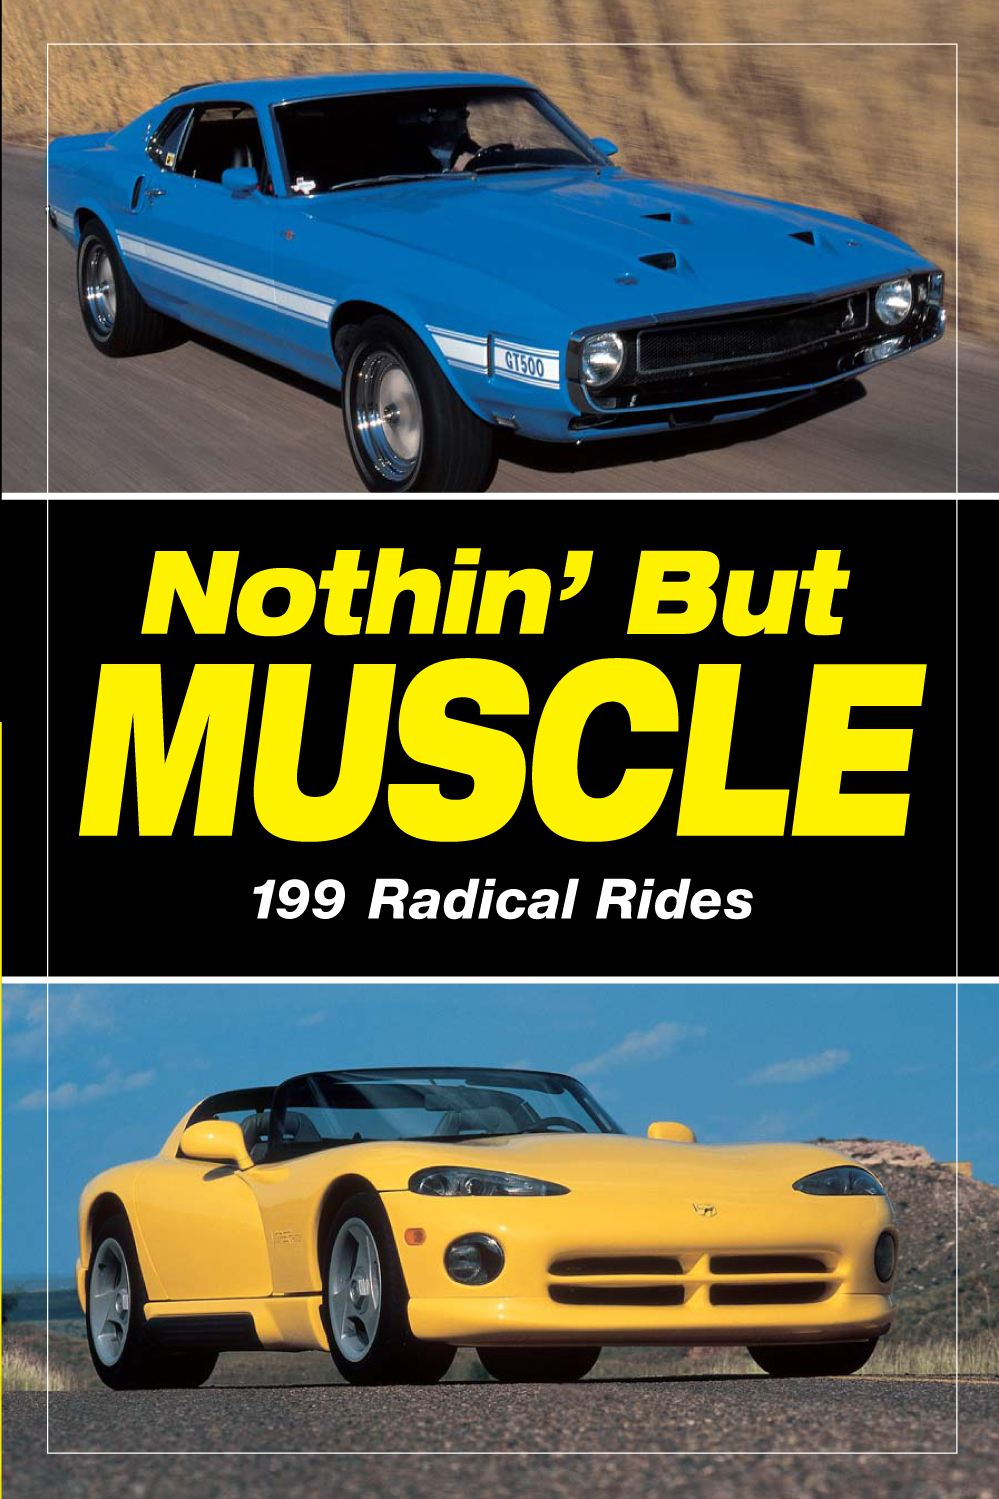 Nothin' But Muscle